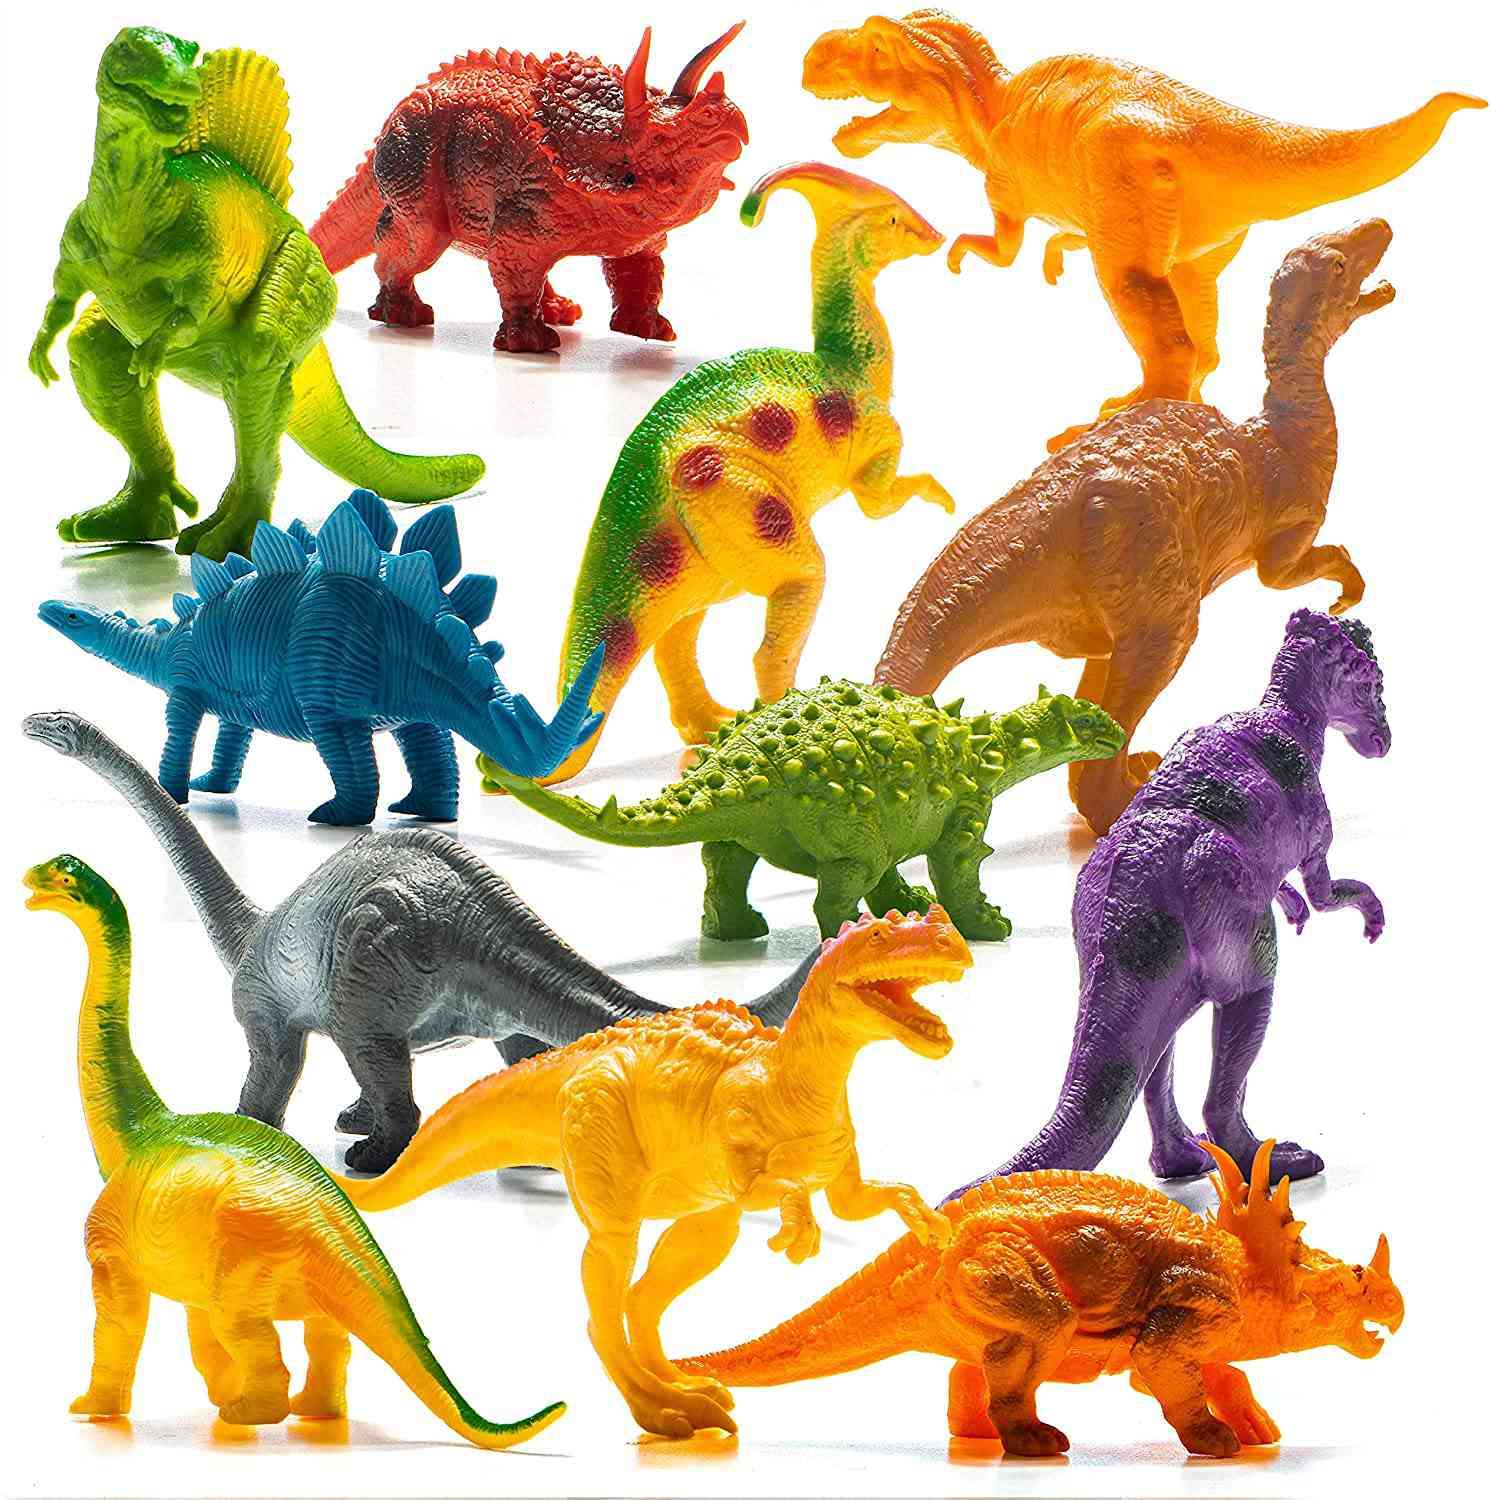 Prextex Realistic Looking 7-inch Dinosaurs Pack